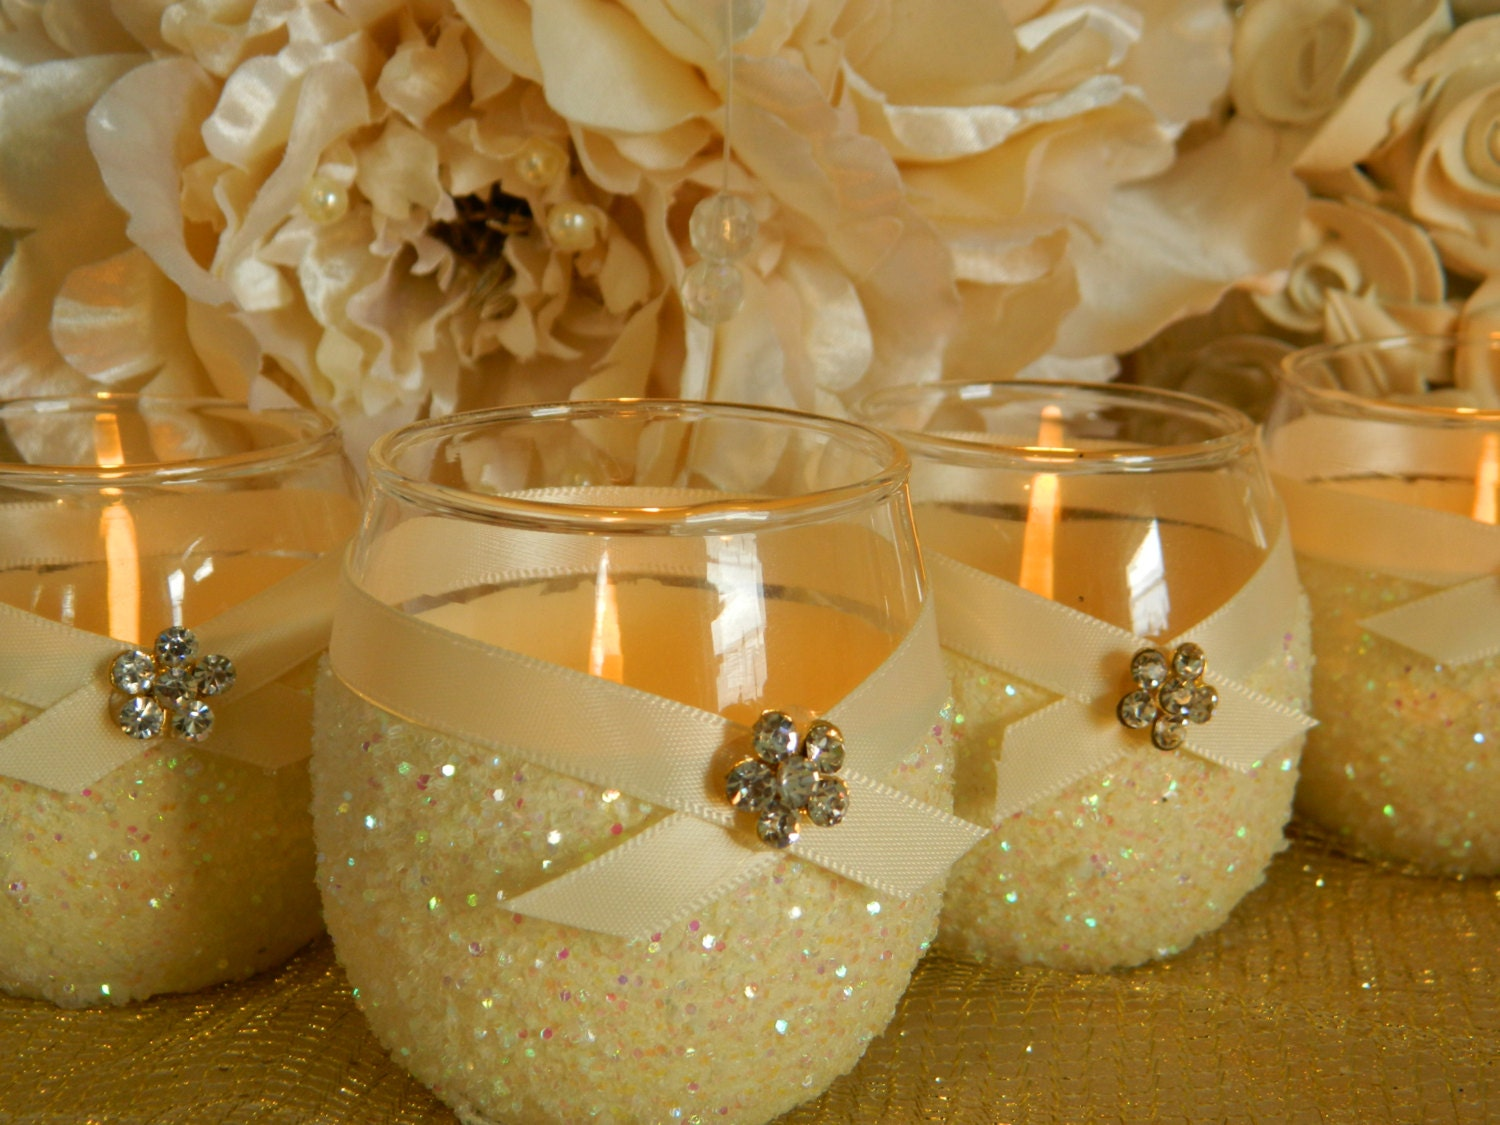 Weddings wedding candles candle holder votives by kpgdesigns - Decoracion de velas ...